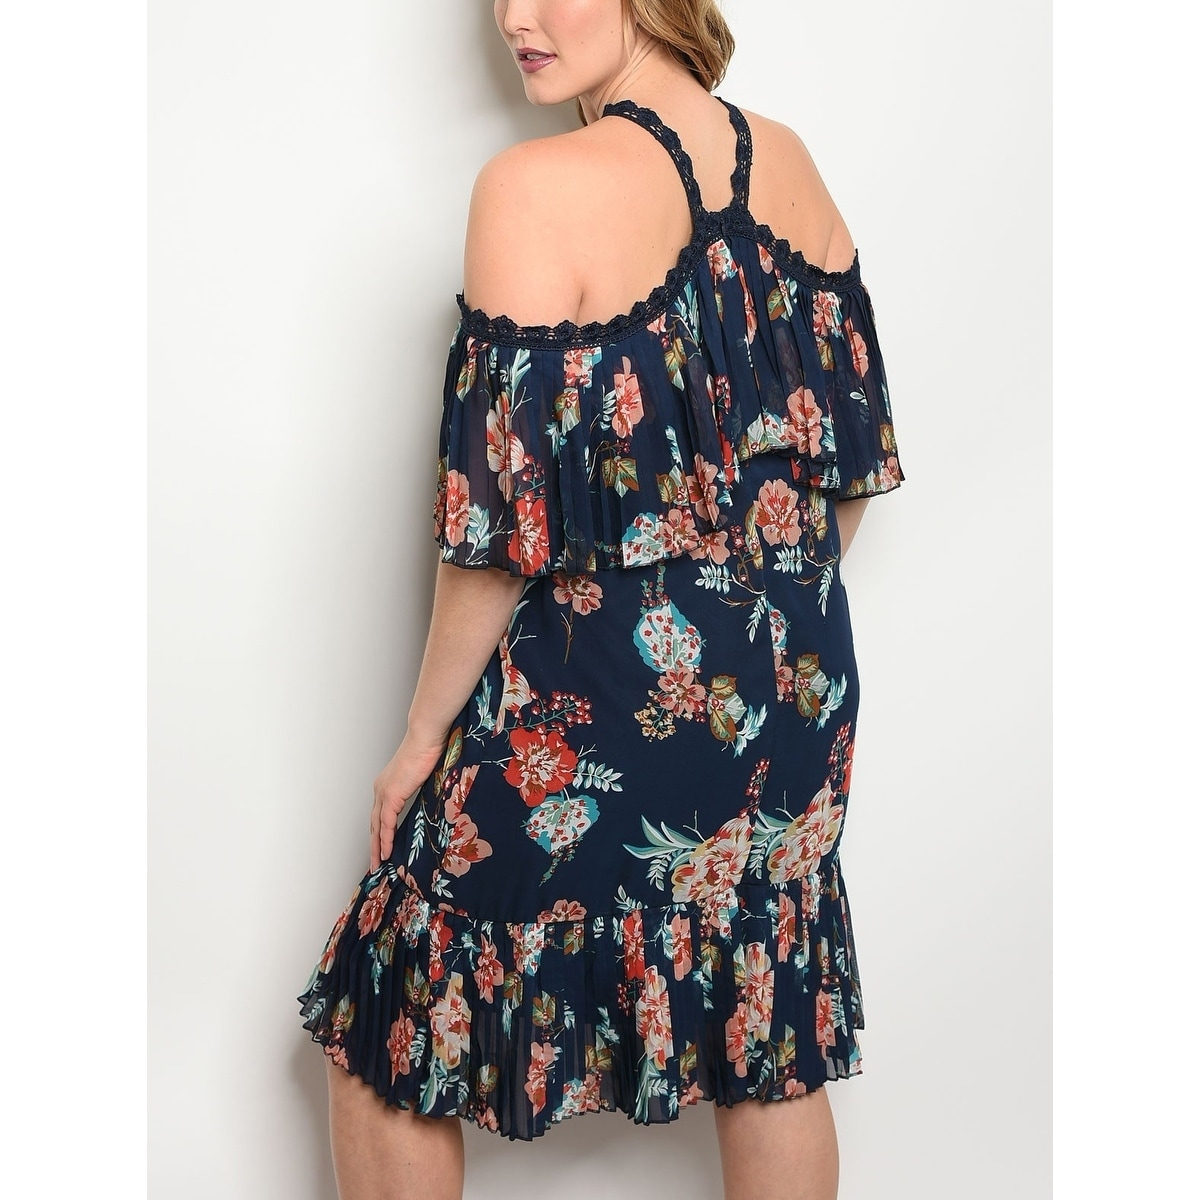 7e2958b9582540 Shop JED Women s Plus Size Floral Halter Floral Tunic Dress - On Sale -  Free Shipping On Orders Over  45 - Overstock.com - 19843761